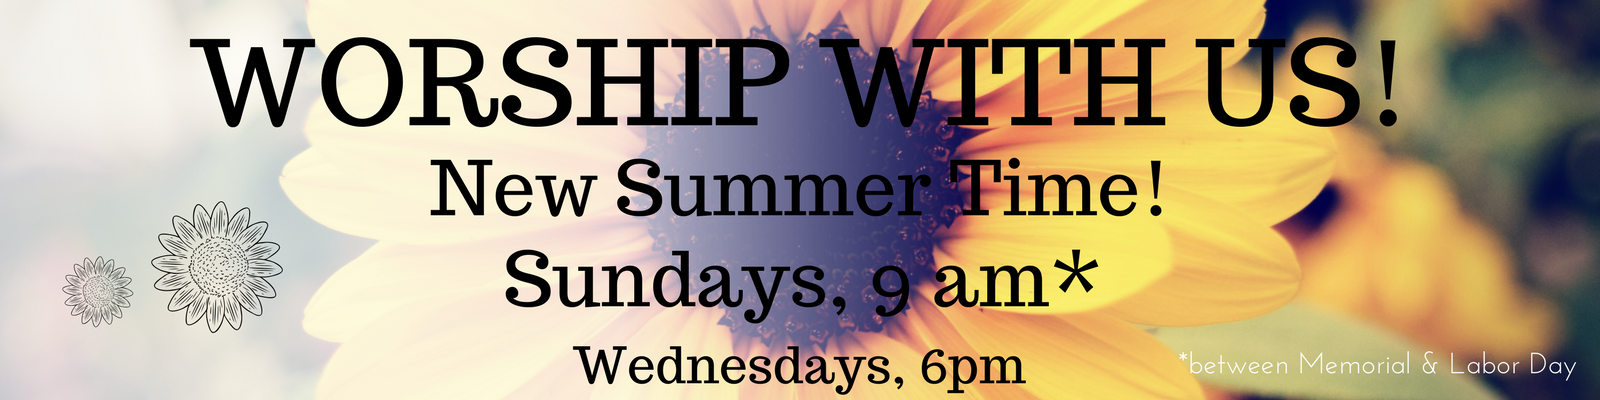 orship With Us This Summer at St. John Lutheran in Ely, Iowa at our new time on Sundays, 9 am from Memorial Day Sunday through Labor Day Sunday